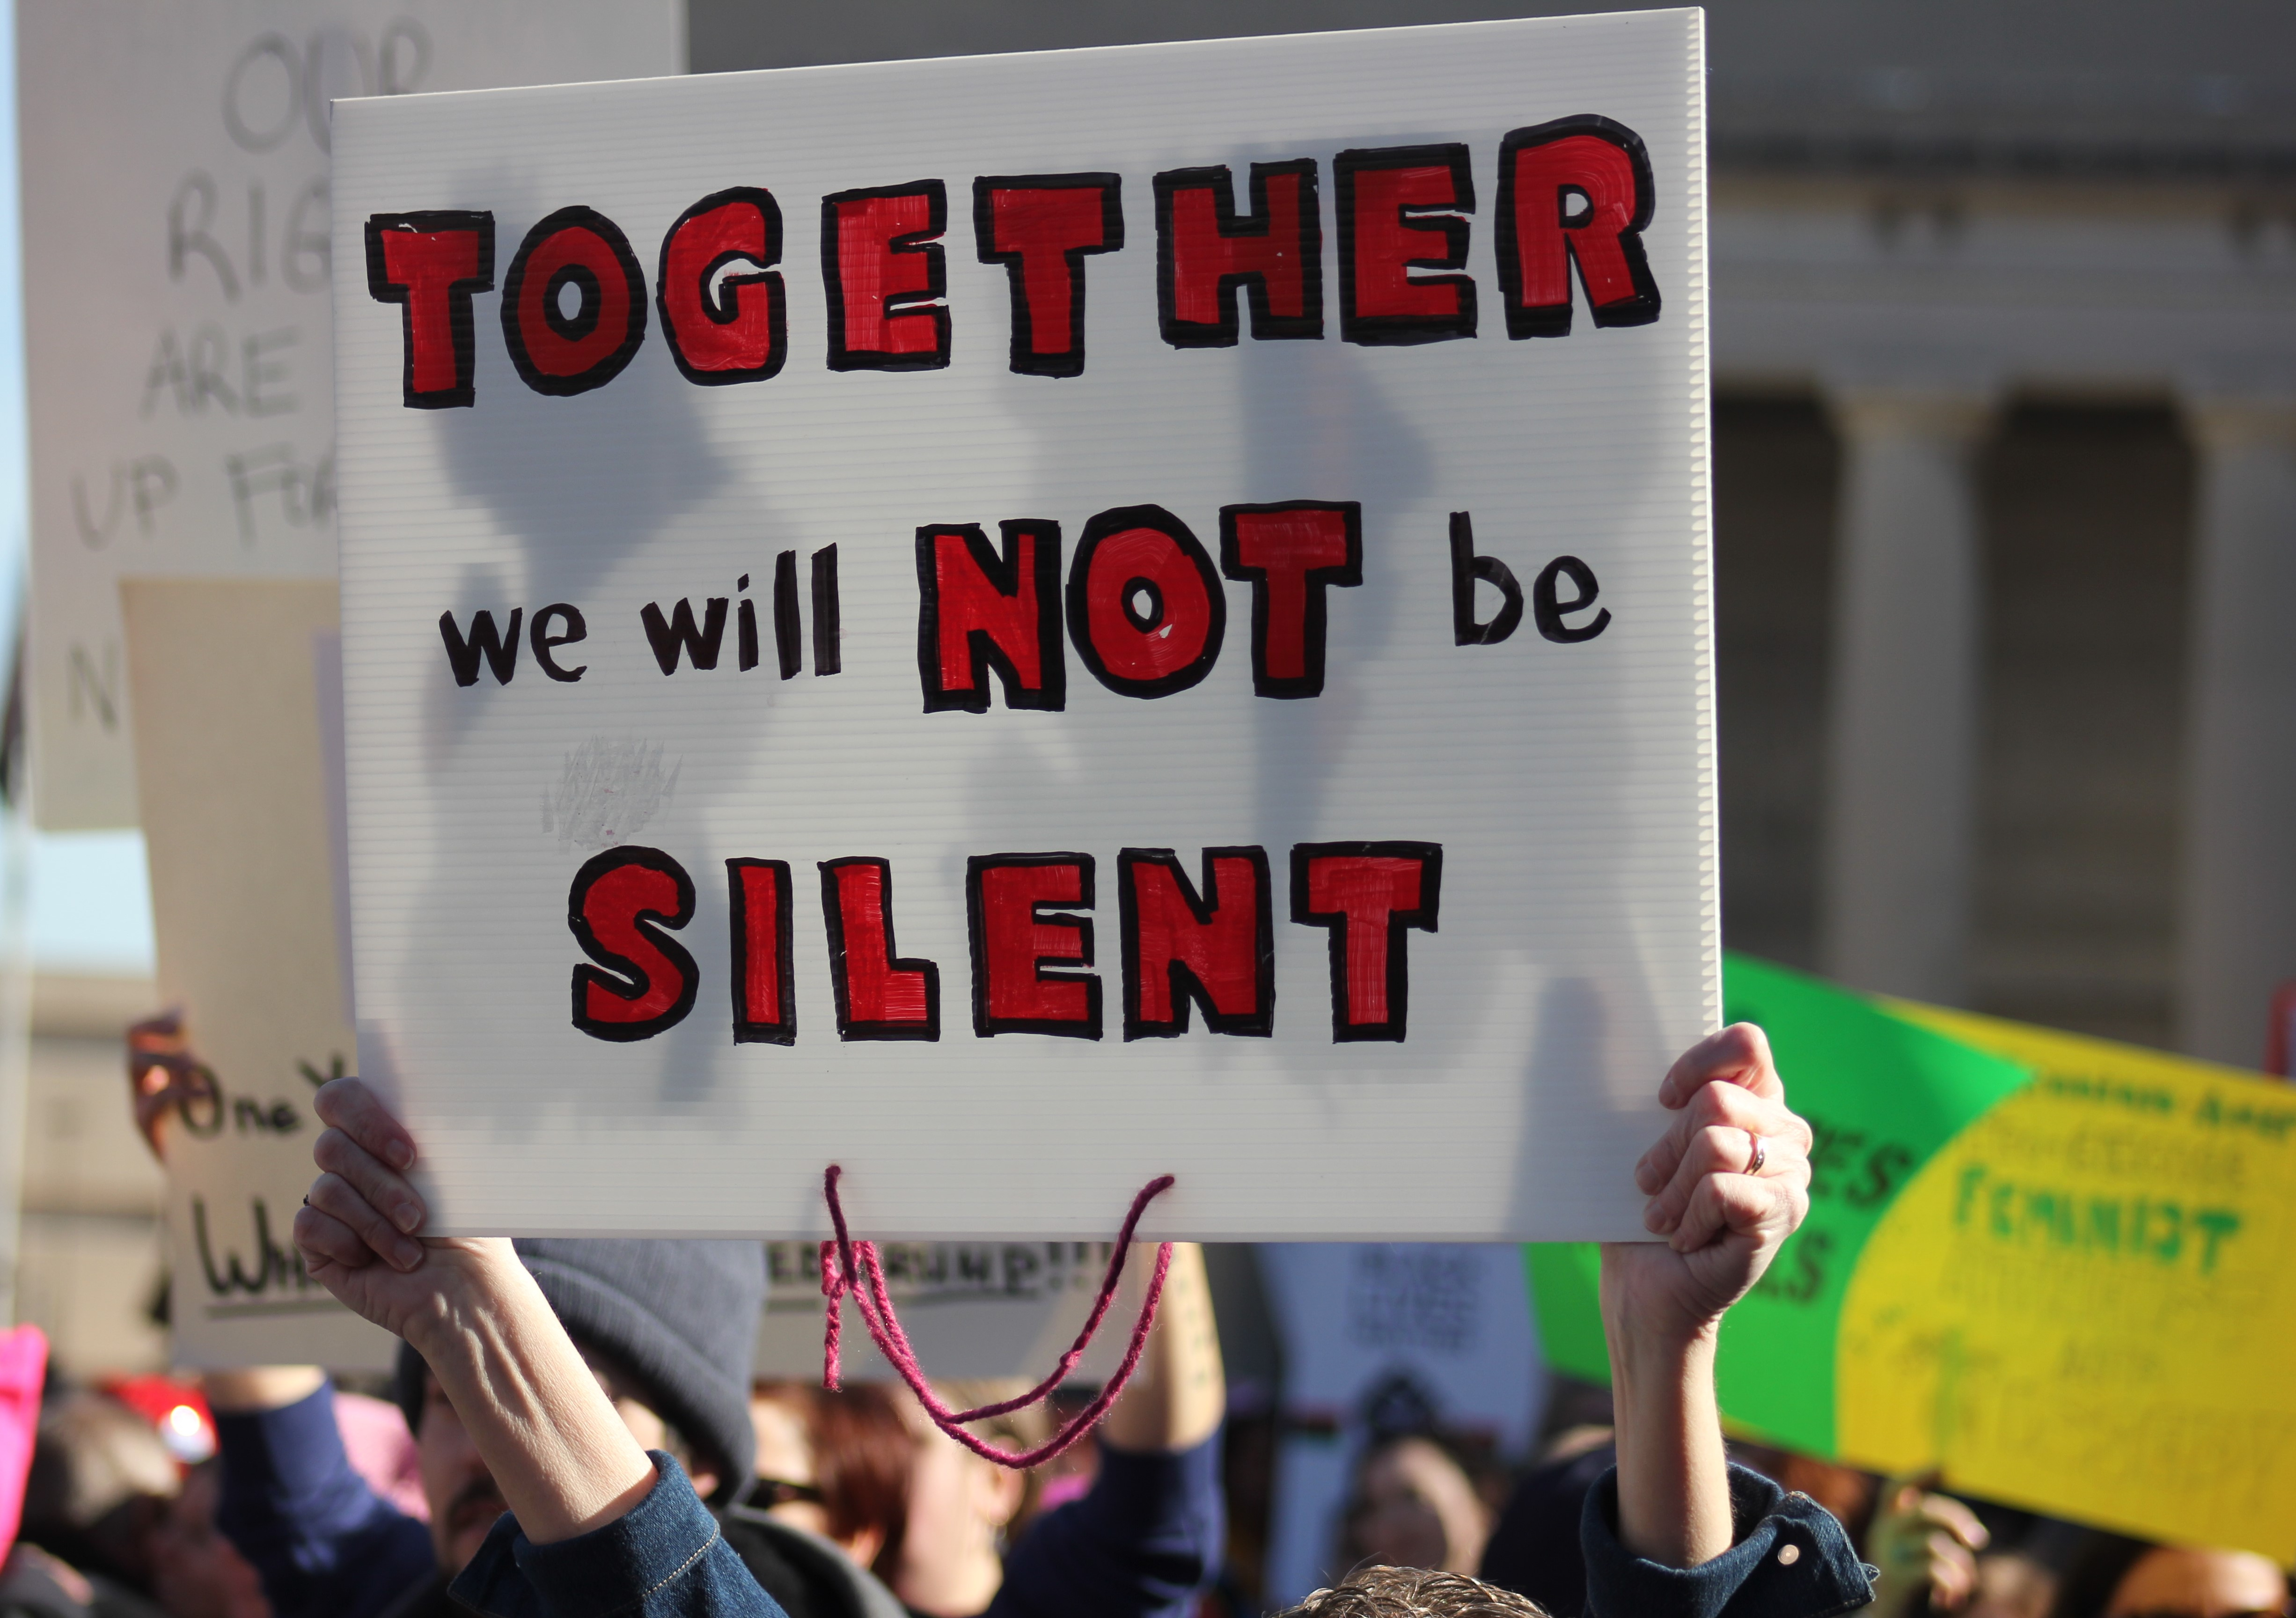 by Elvert Barnes Protest Photograph via flickr